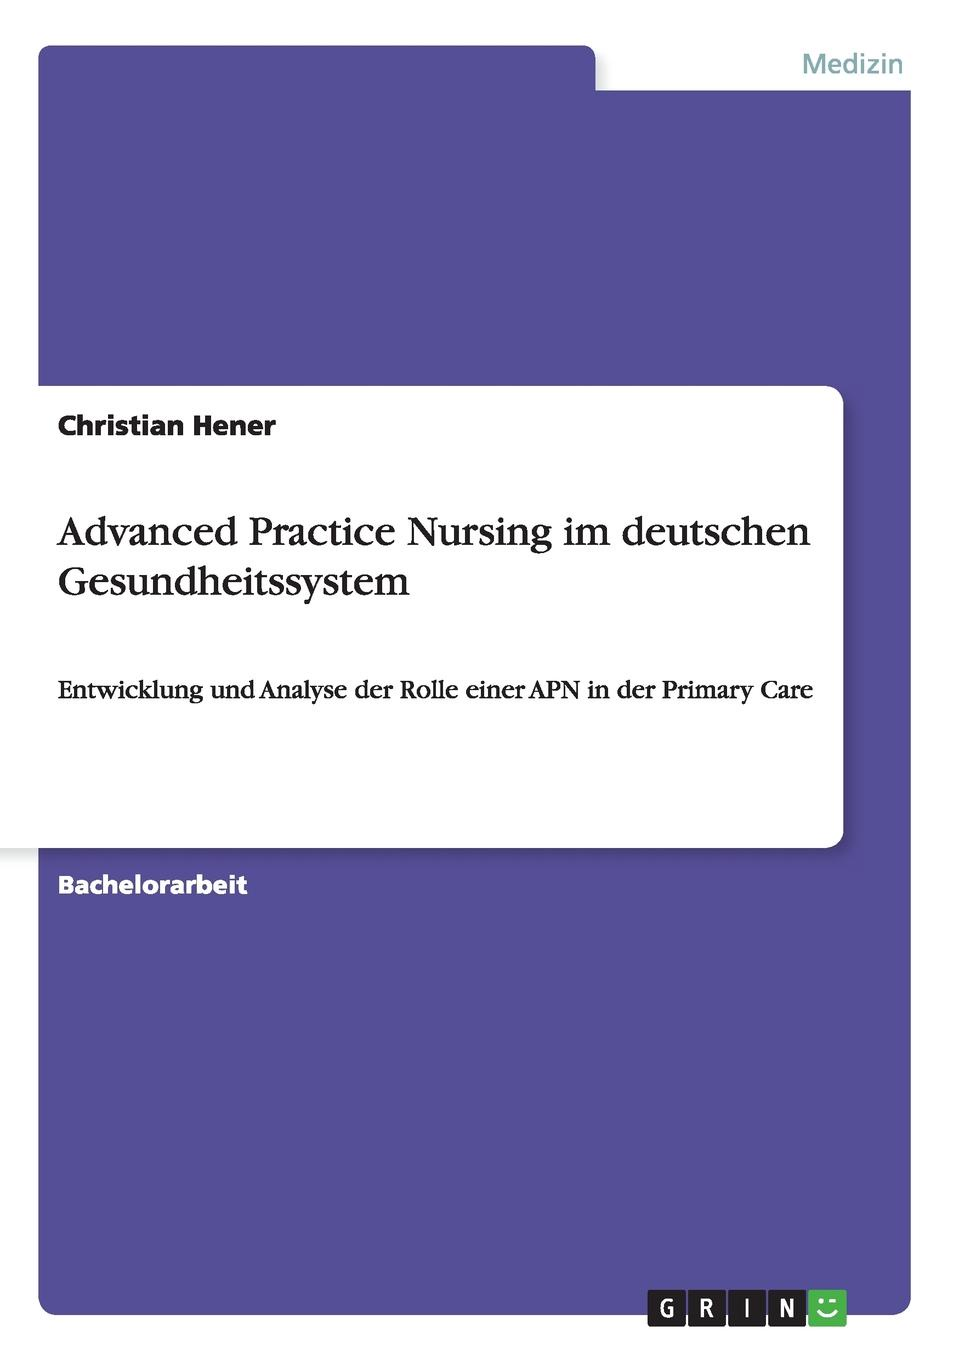 Christian Hener Advanced Practice Nursing im deutschen Gesundheitssystem brown marie annette the advanced practice registered nurse as a prescriber